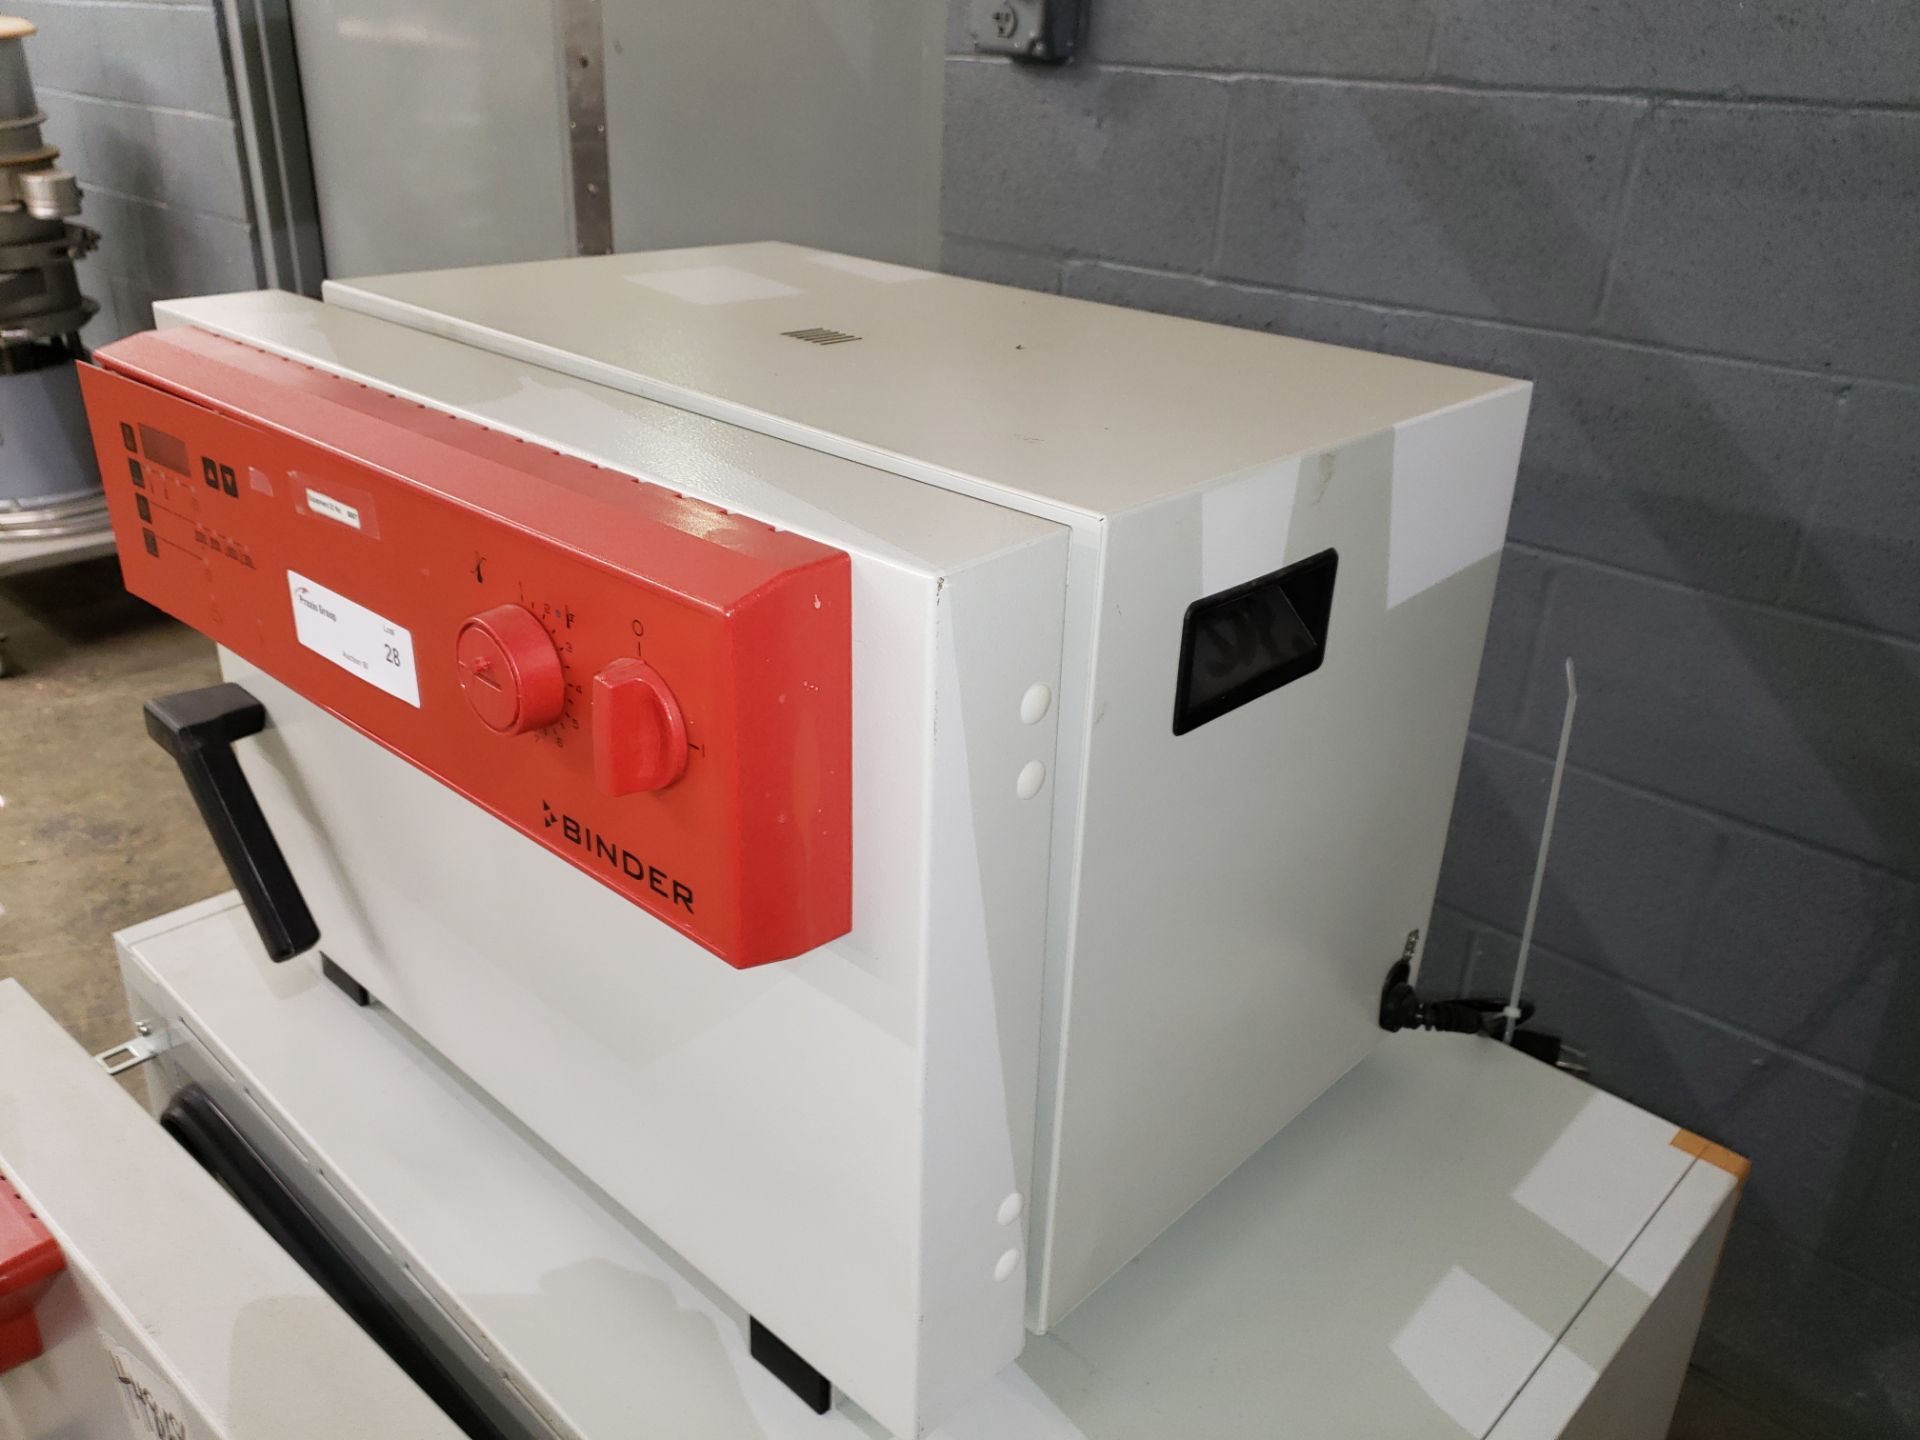 Lot 28 - Binder oven, model IP-20, stainless steel product contacts surfaces, .8 kw, 115 volt, serial#